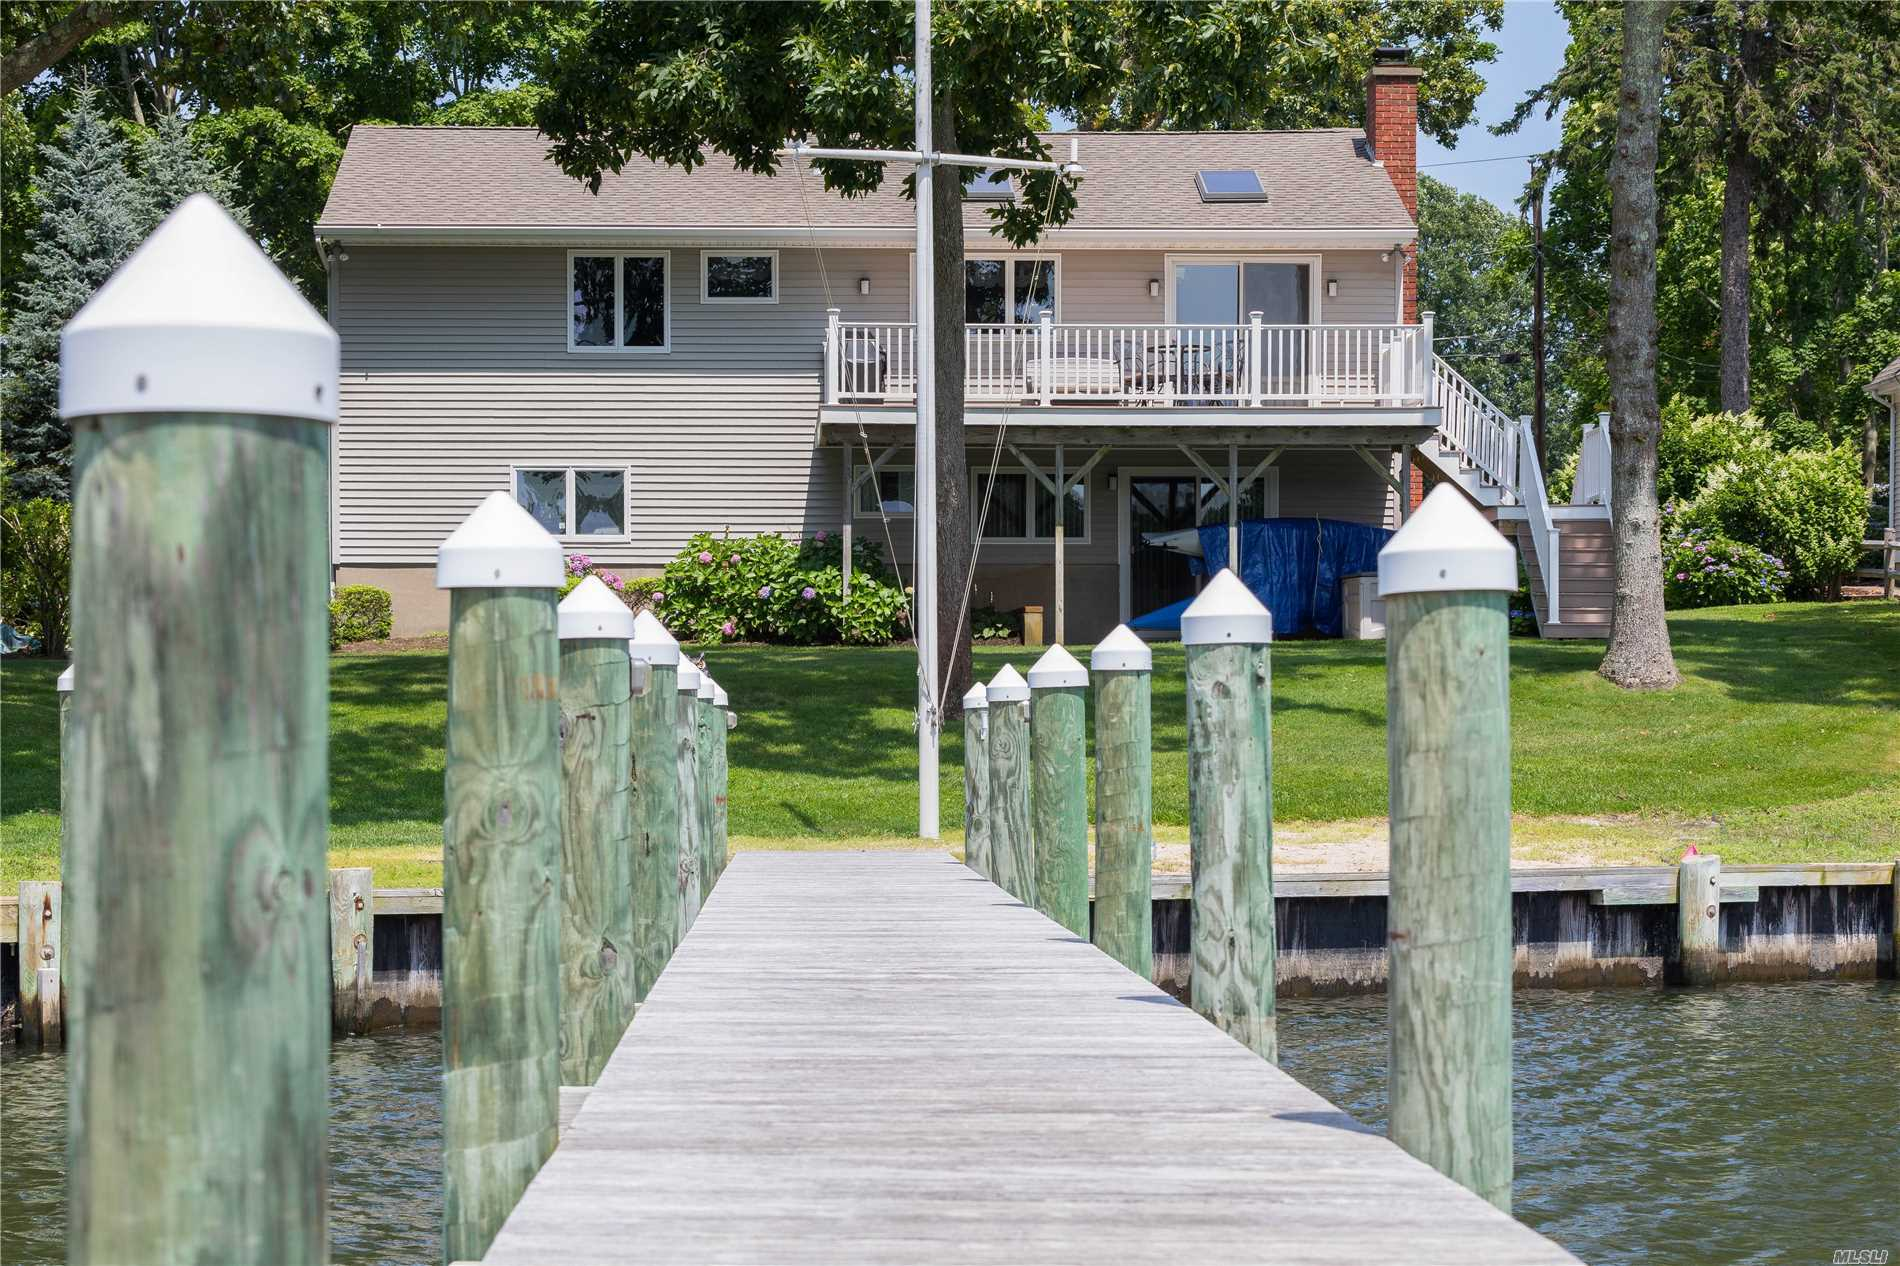 Dock With Access To Peconic Bay, Move In Ready With 3+ Bedrooms, 2 Full Baths, Open Floor Plan With Spacious Eat In Kitchen, Deck, 1 Car Garage, Walkout Lower Level, Located In The Heart Of The North Fork